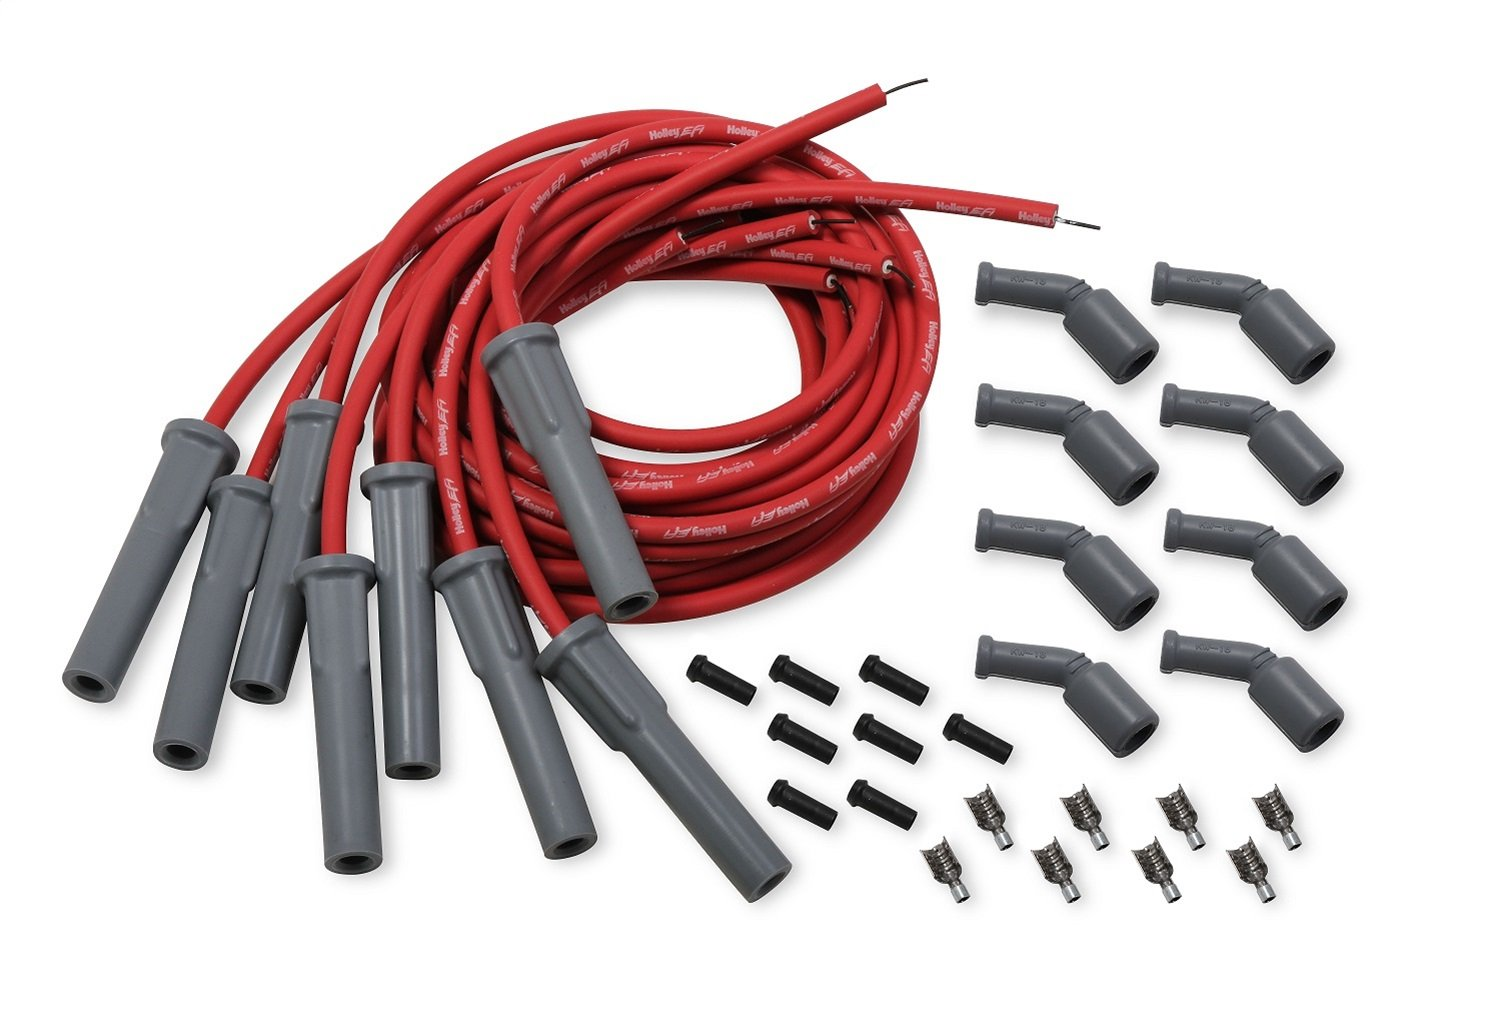 Amazon.com: Holley 561-112 Spark Plug Wire Set Cut To Fit ... on spark plug solenoid, spark plug wire, spark plug module, spark plug insulator, spark plug brackets, spark plug housing, spark plug shift knob, spark plug relay, spark plug plugs, spark plug cables, spark plug cords, spark plug repair, spark plug coil test, spark plug testing, spark plug battery, spark plug mounts, spark plug fuse, spark plug filter, spark plug operation, spark plug pump,